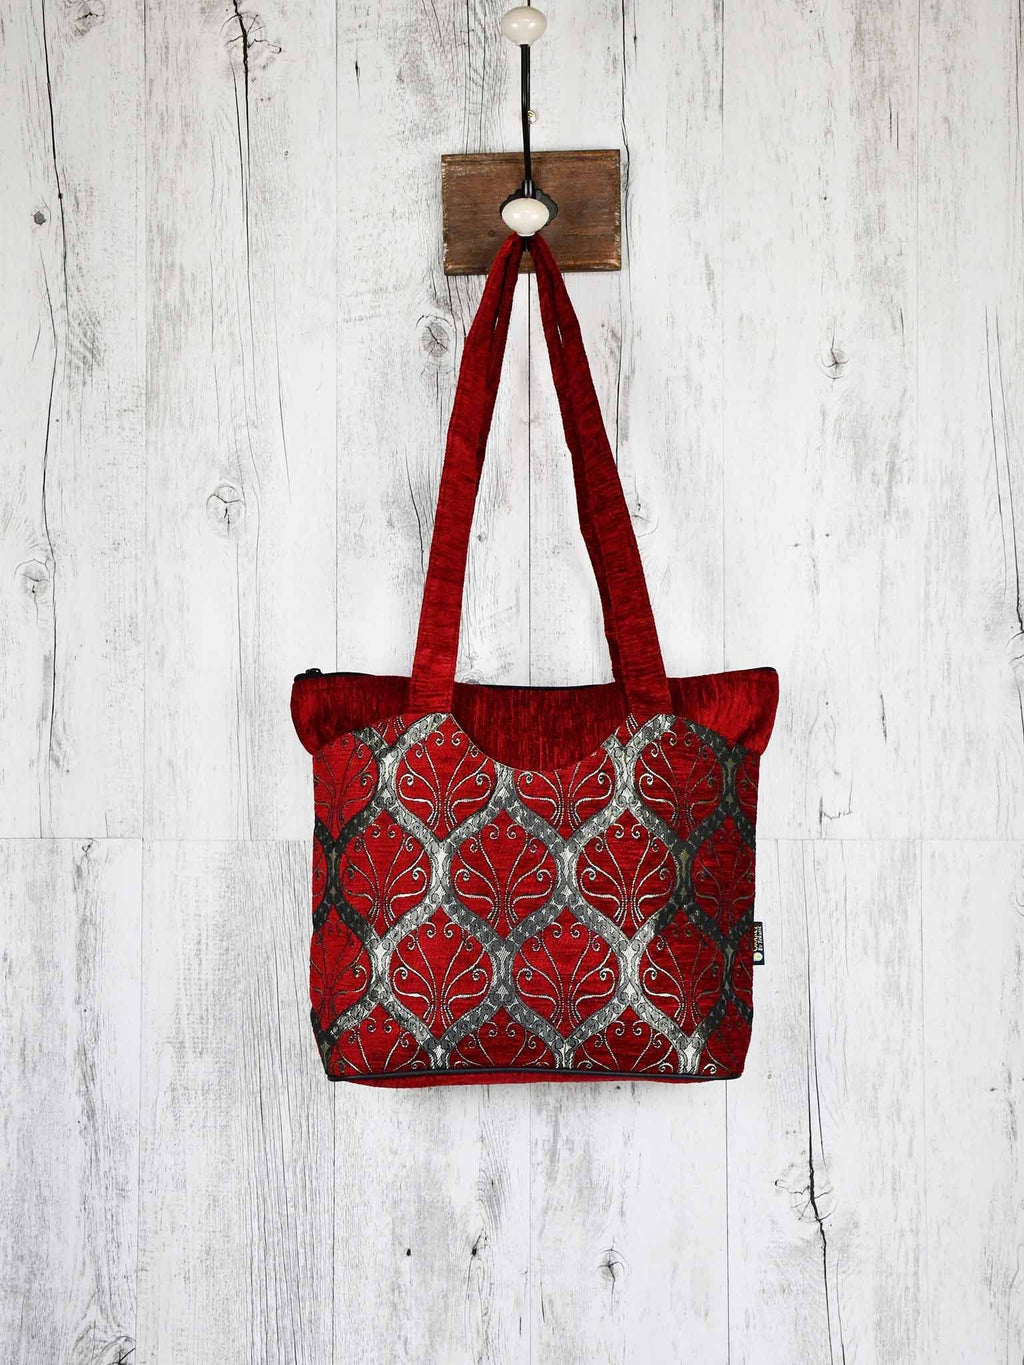 Turkish Handbag Tote Tradition Red Textile Sydney Grand Bazaar